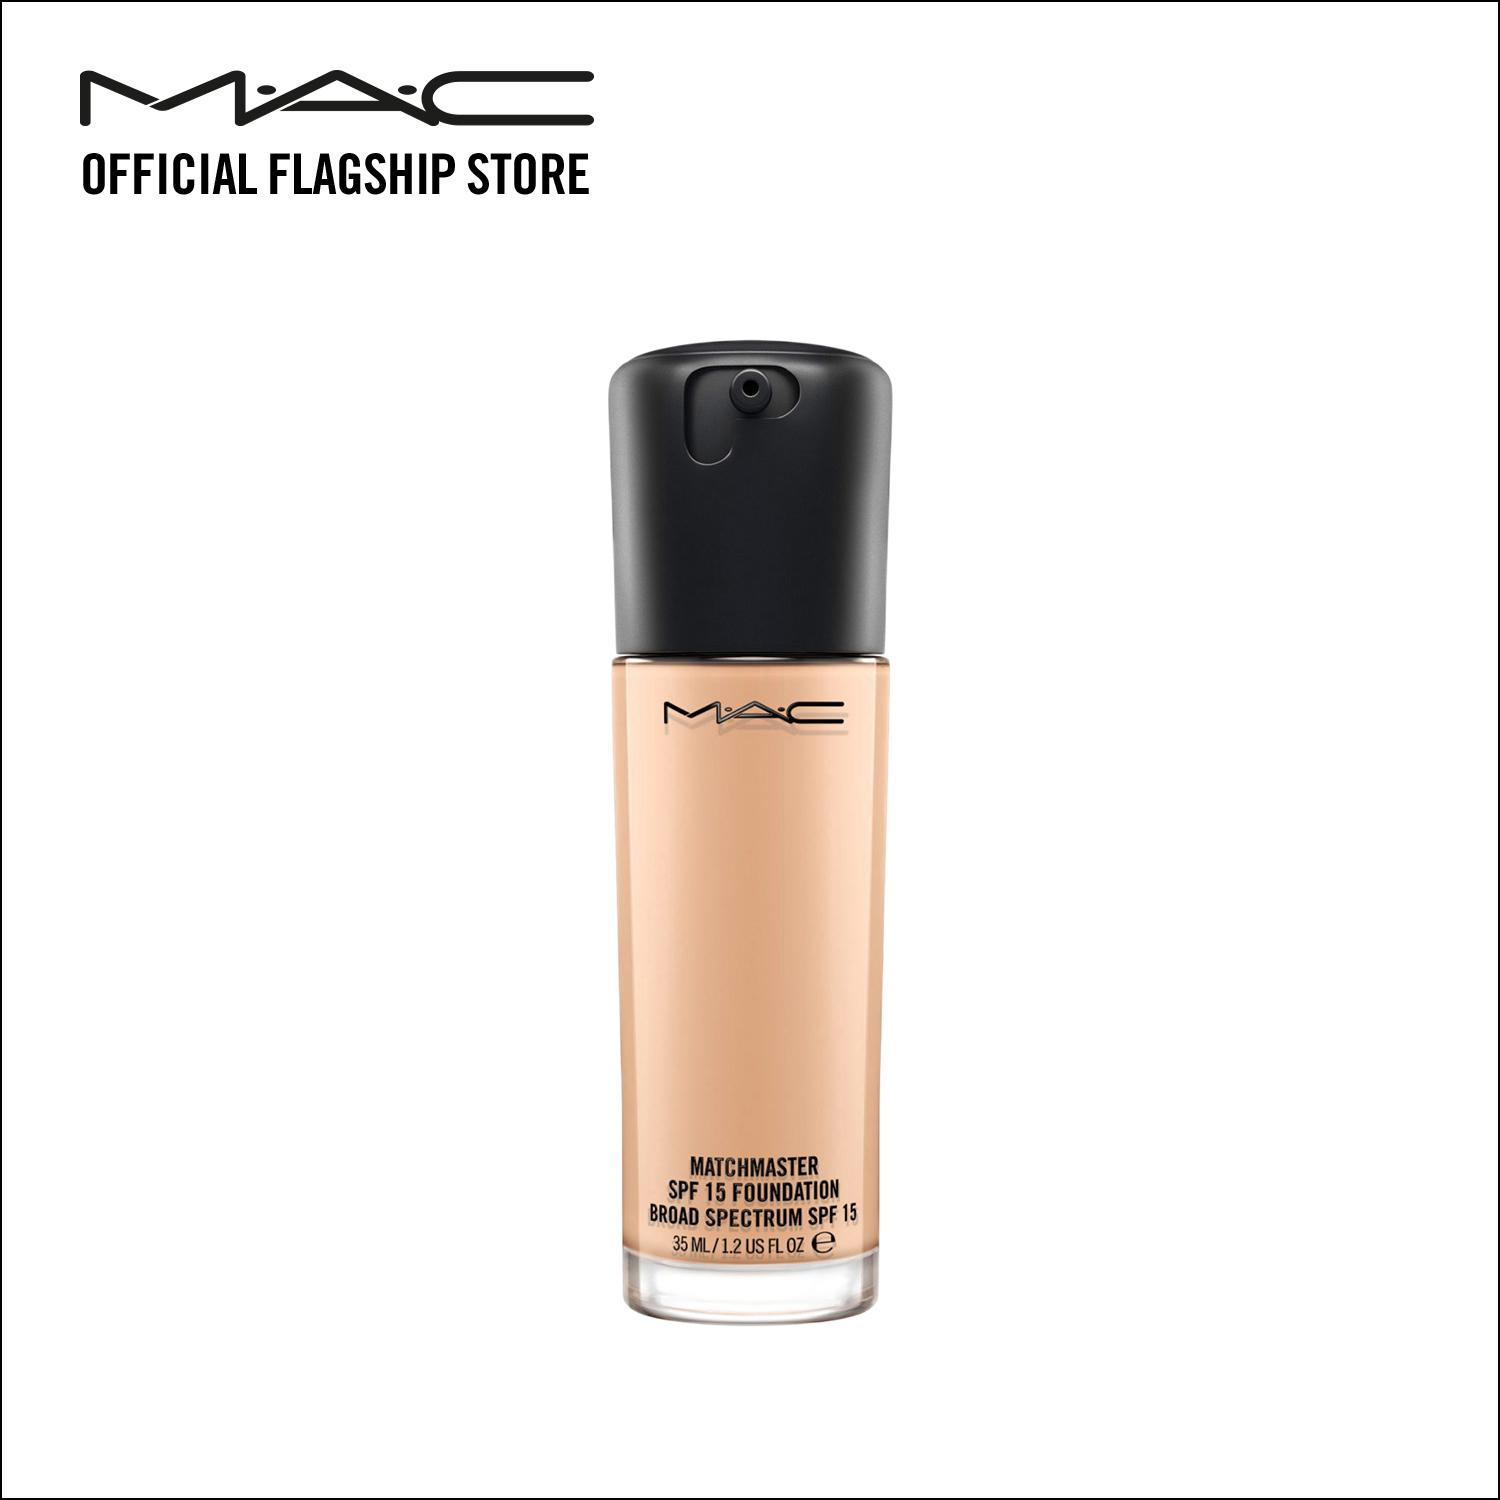 Mac Matchmaster Spf 15 Foundation 1 5 Mac Discount